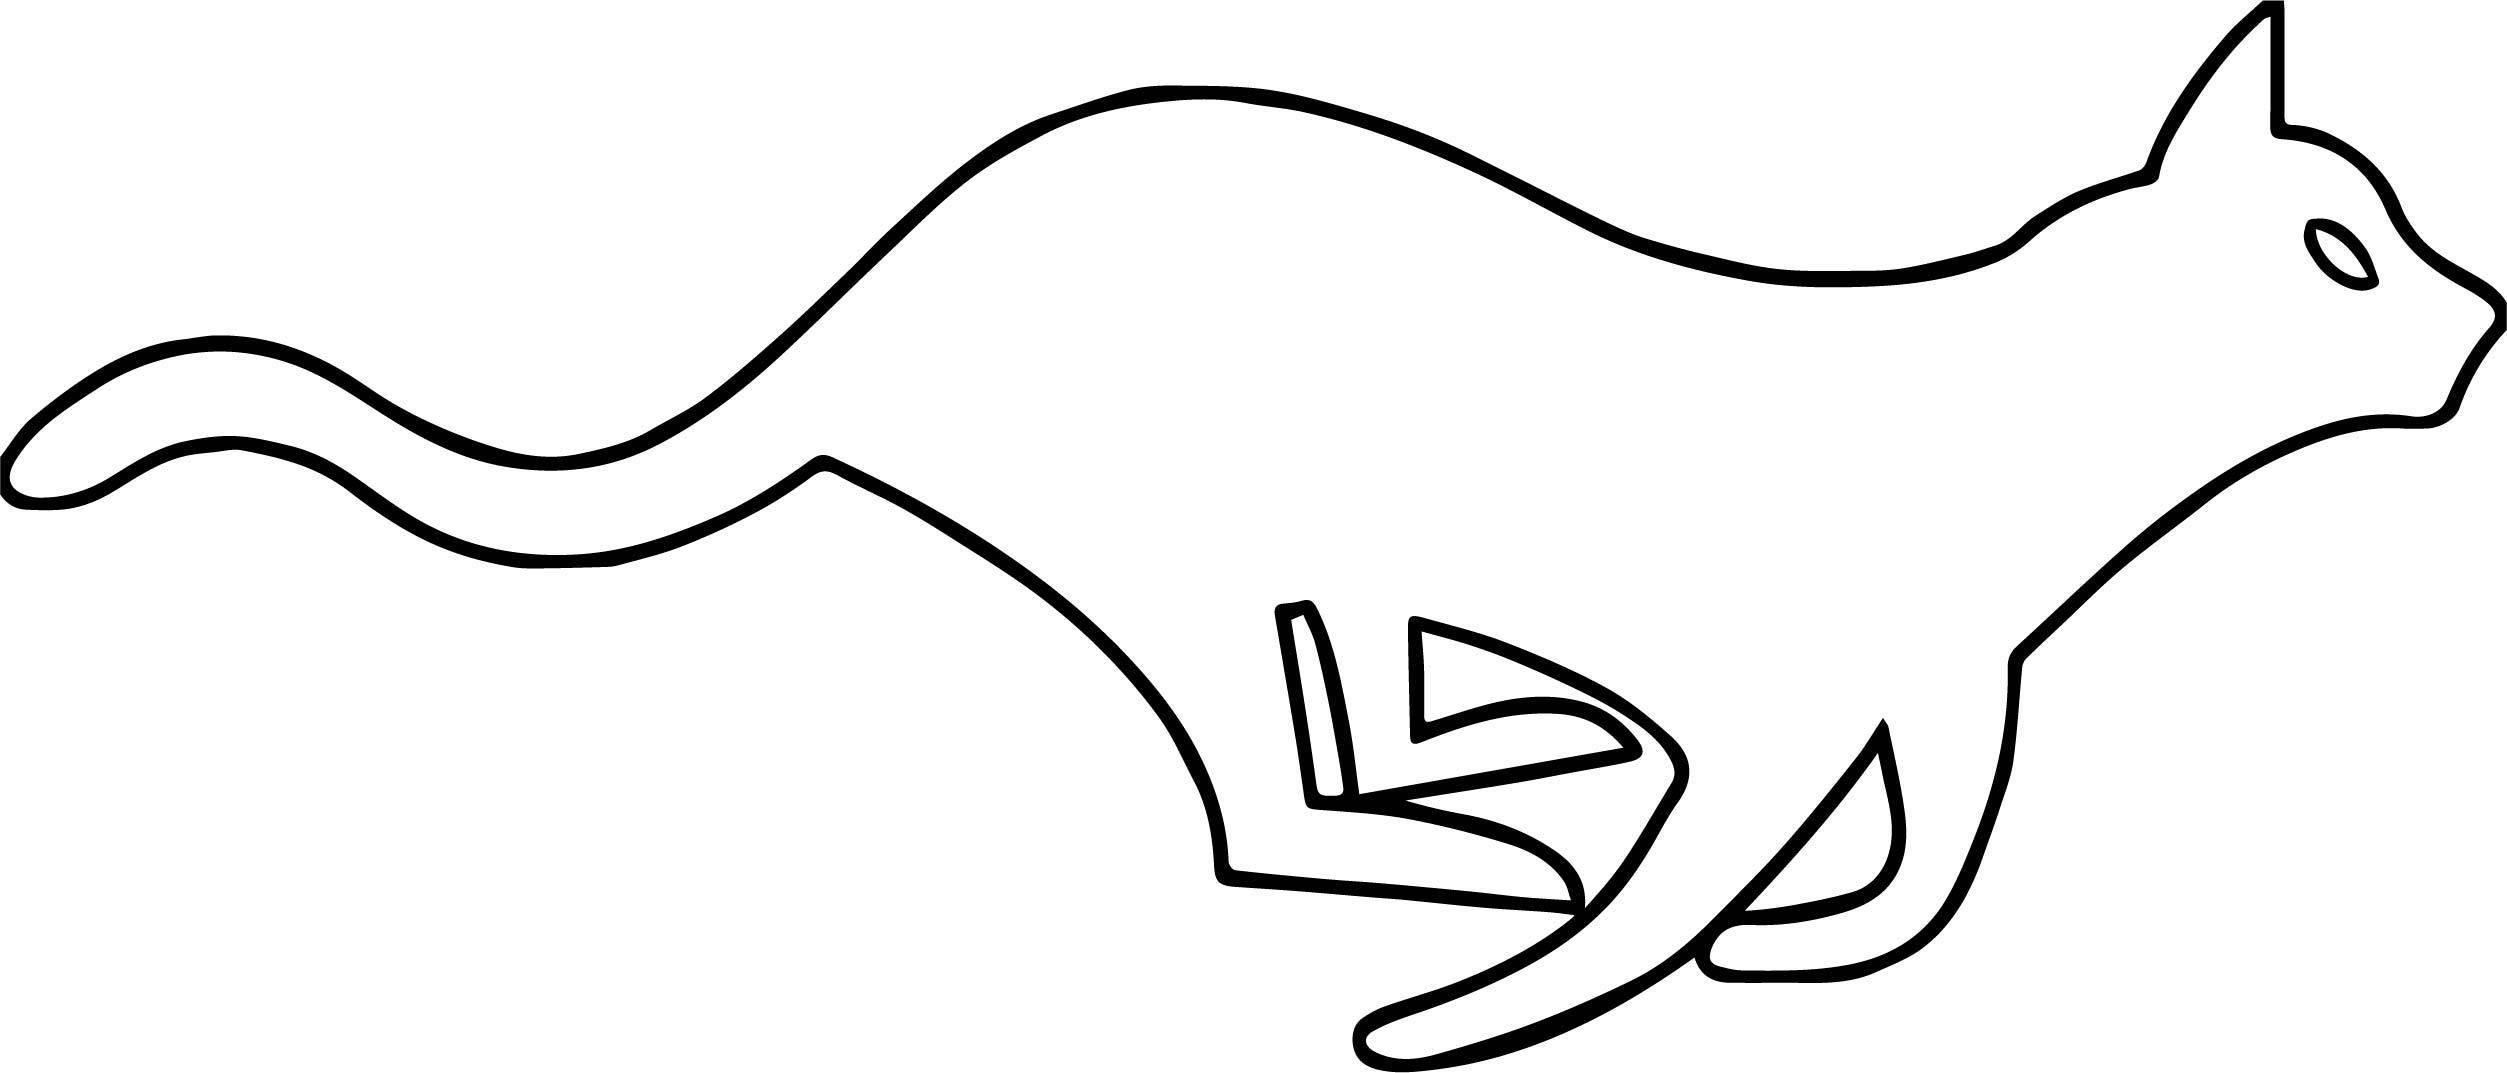 Too Cat Coloring Page